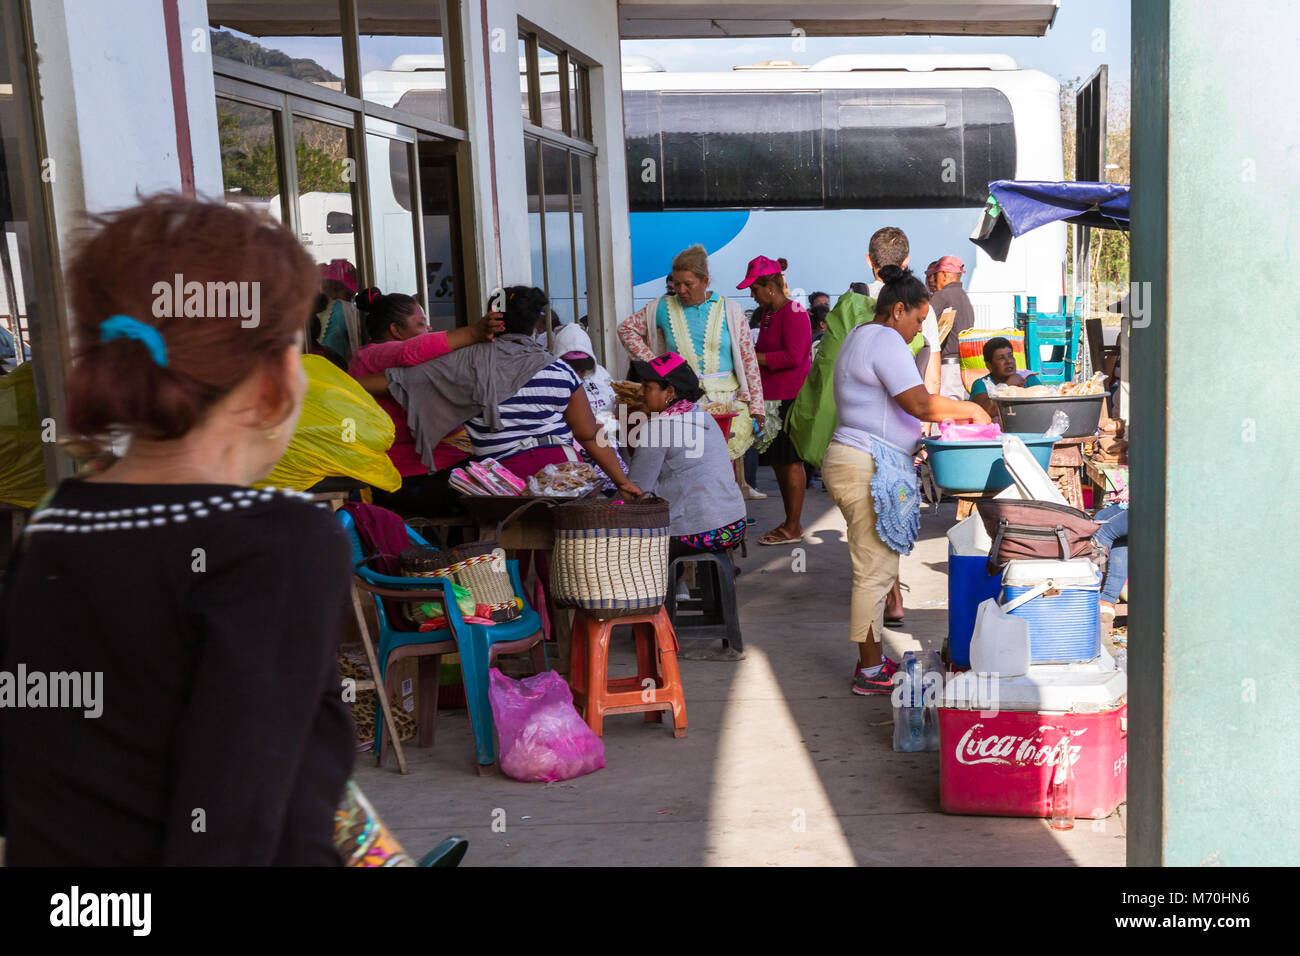 Peñas Blancas, Nicaragua - January 22: Vendors at the border crossing offices from Costa Rica into Nicaragua. - Stock Image